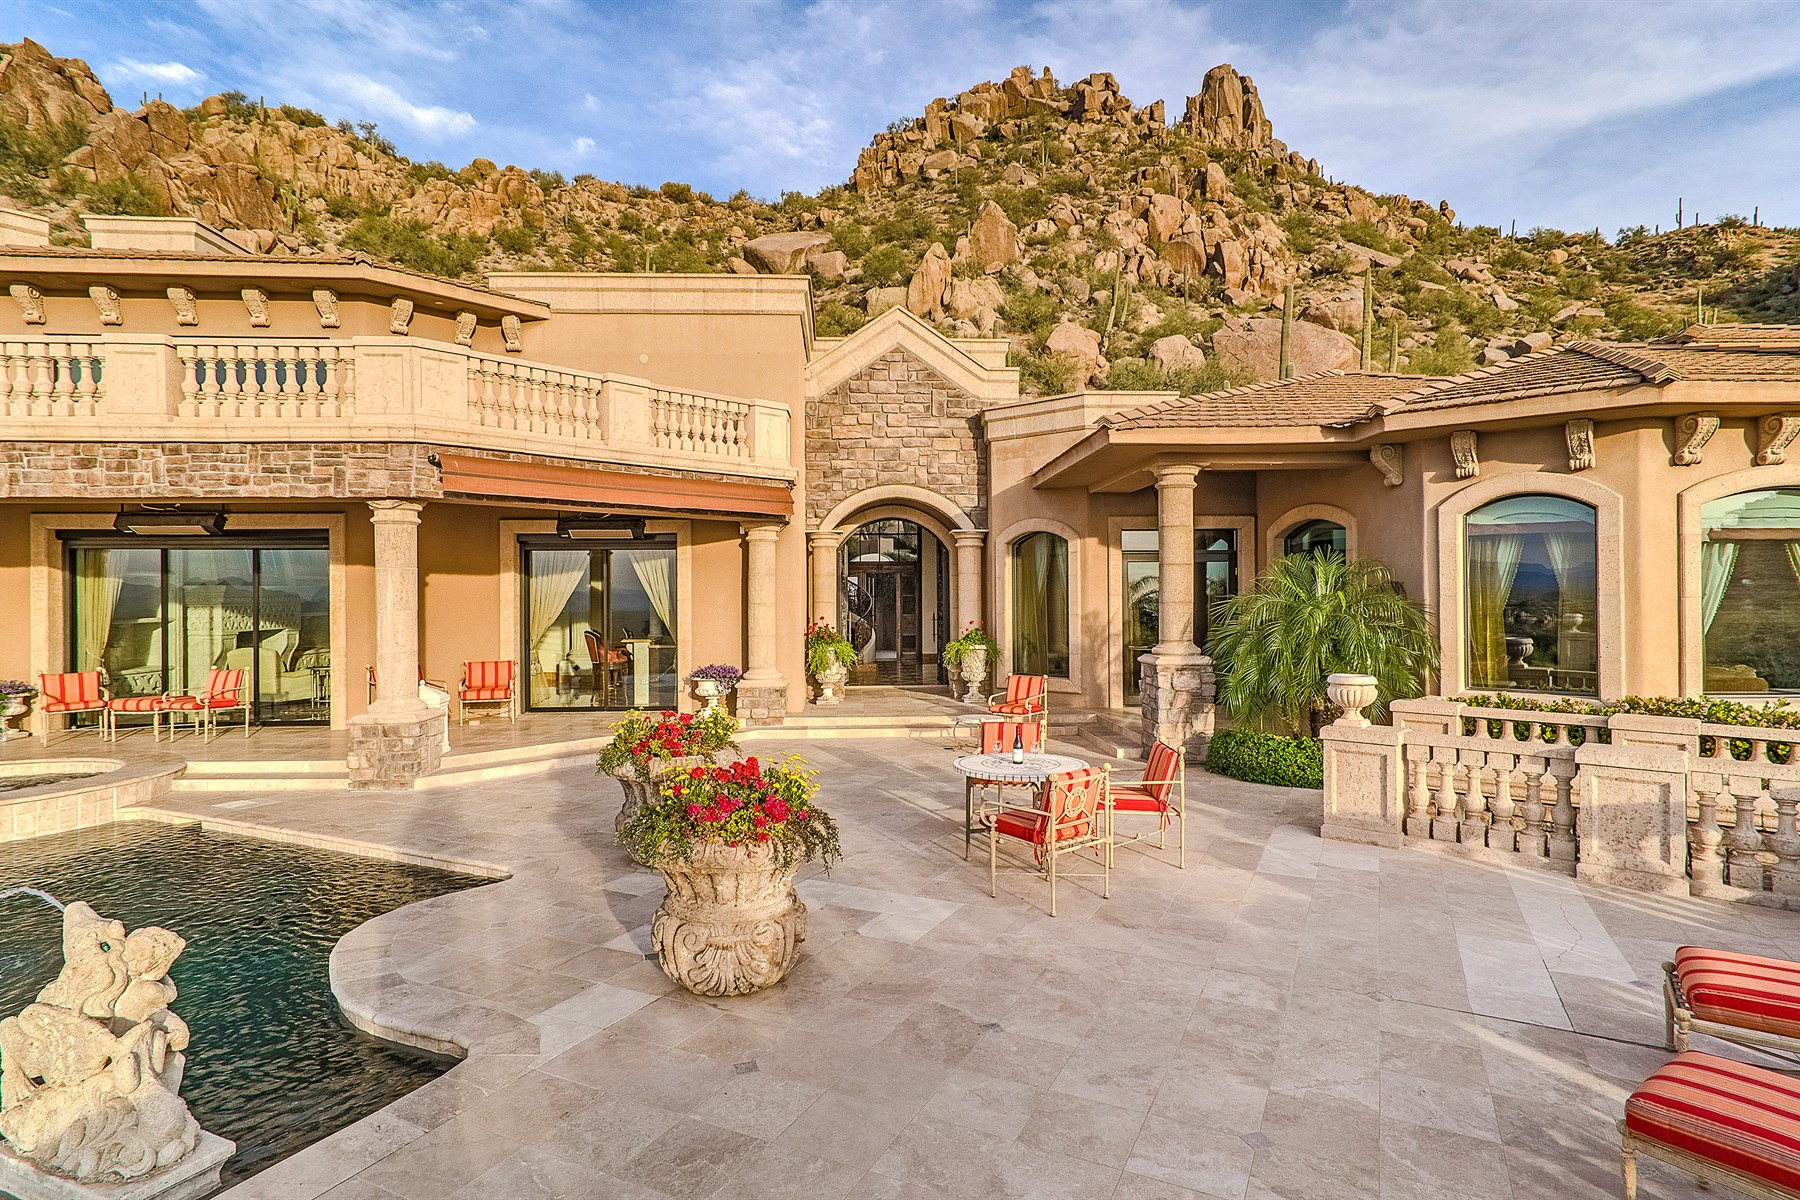 Tek Ailelik Ev için Satış at Glorious views emanate from this hillside estate in Estancia 26905 N 98th Way Scottsdale, Arizona, 85262 Amerika Birleşik Devletleri